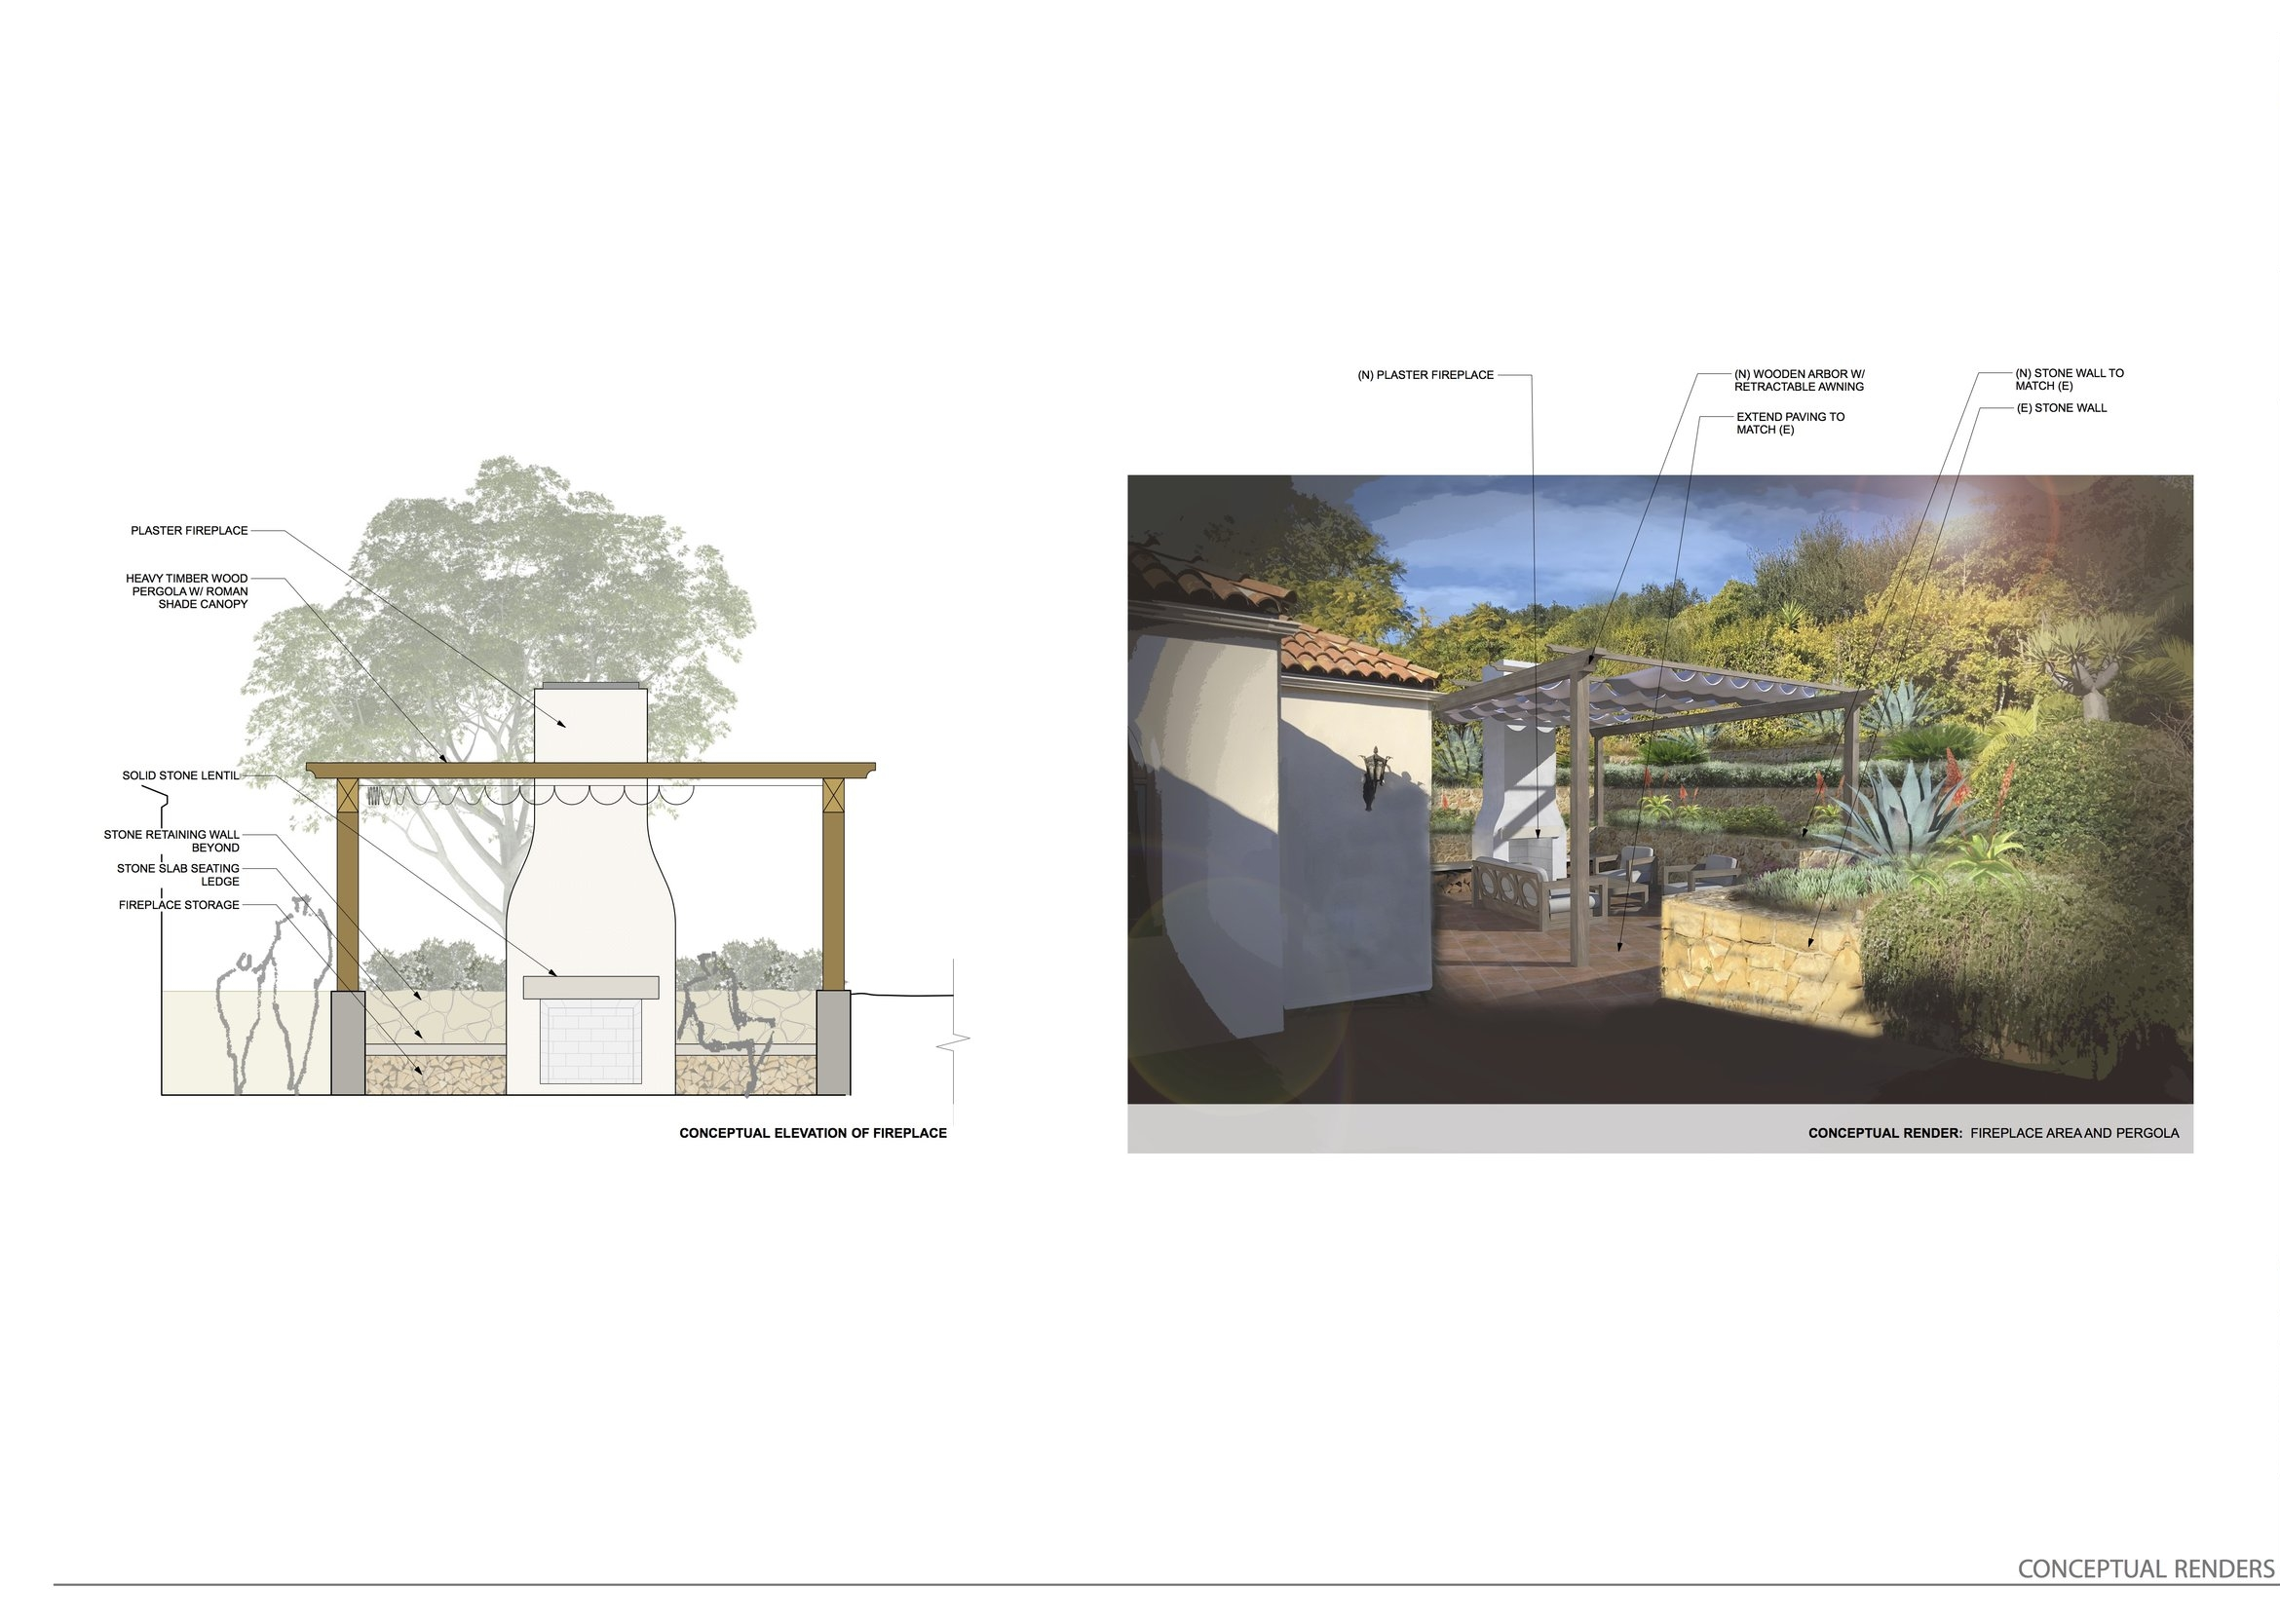 Conceptual Rendering and Elevation Study